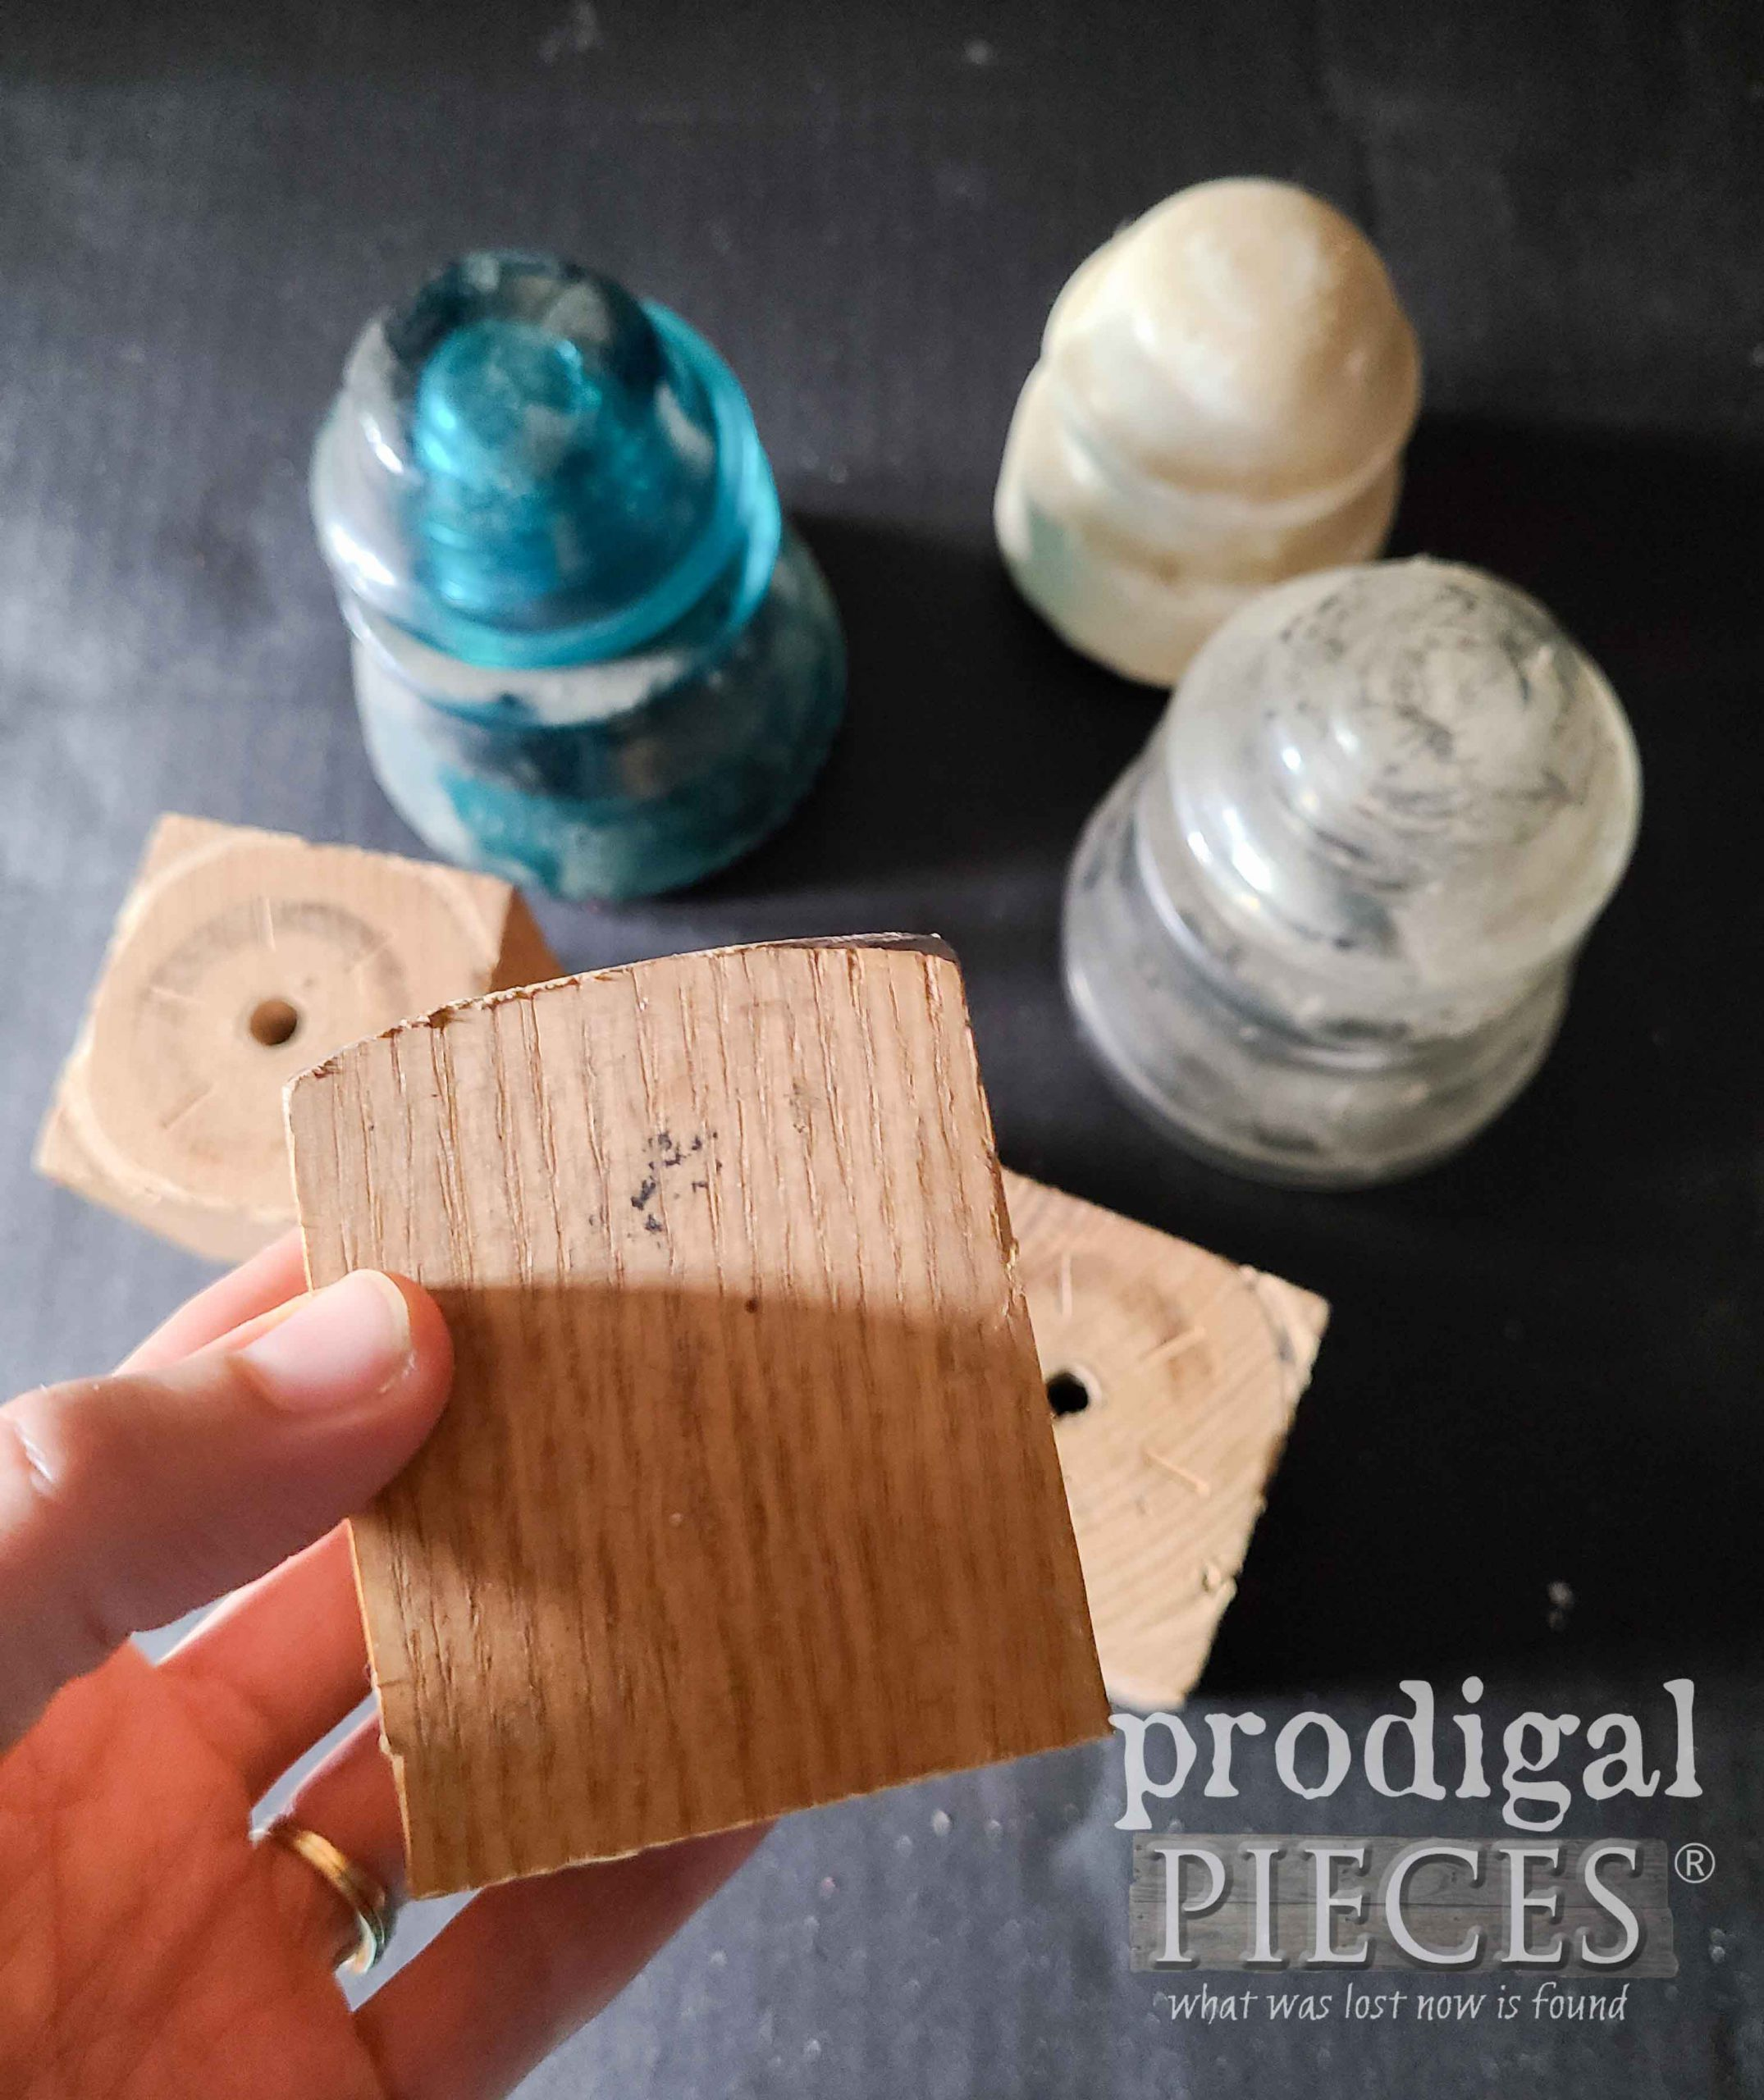 Scrap Wood Salvaged for Upcycled Antique Insulator Candle Holders | prodigalpieces.com